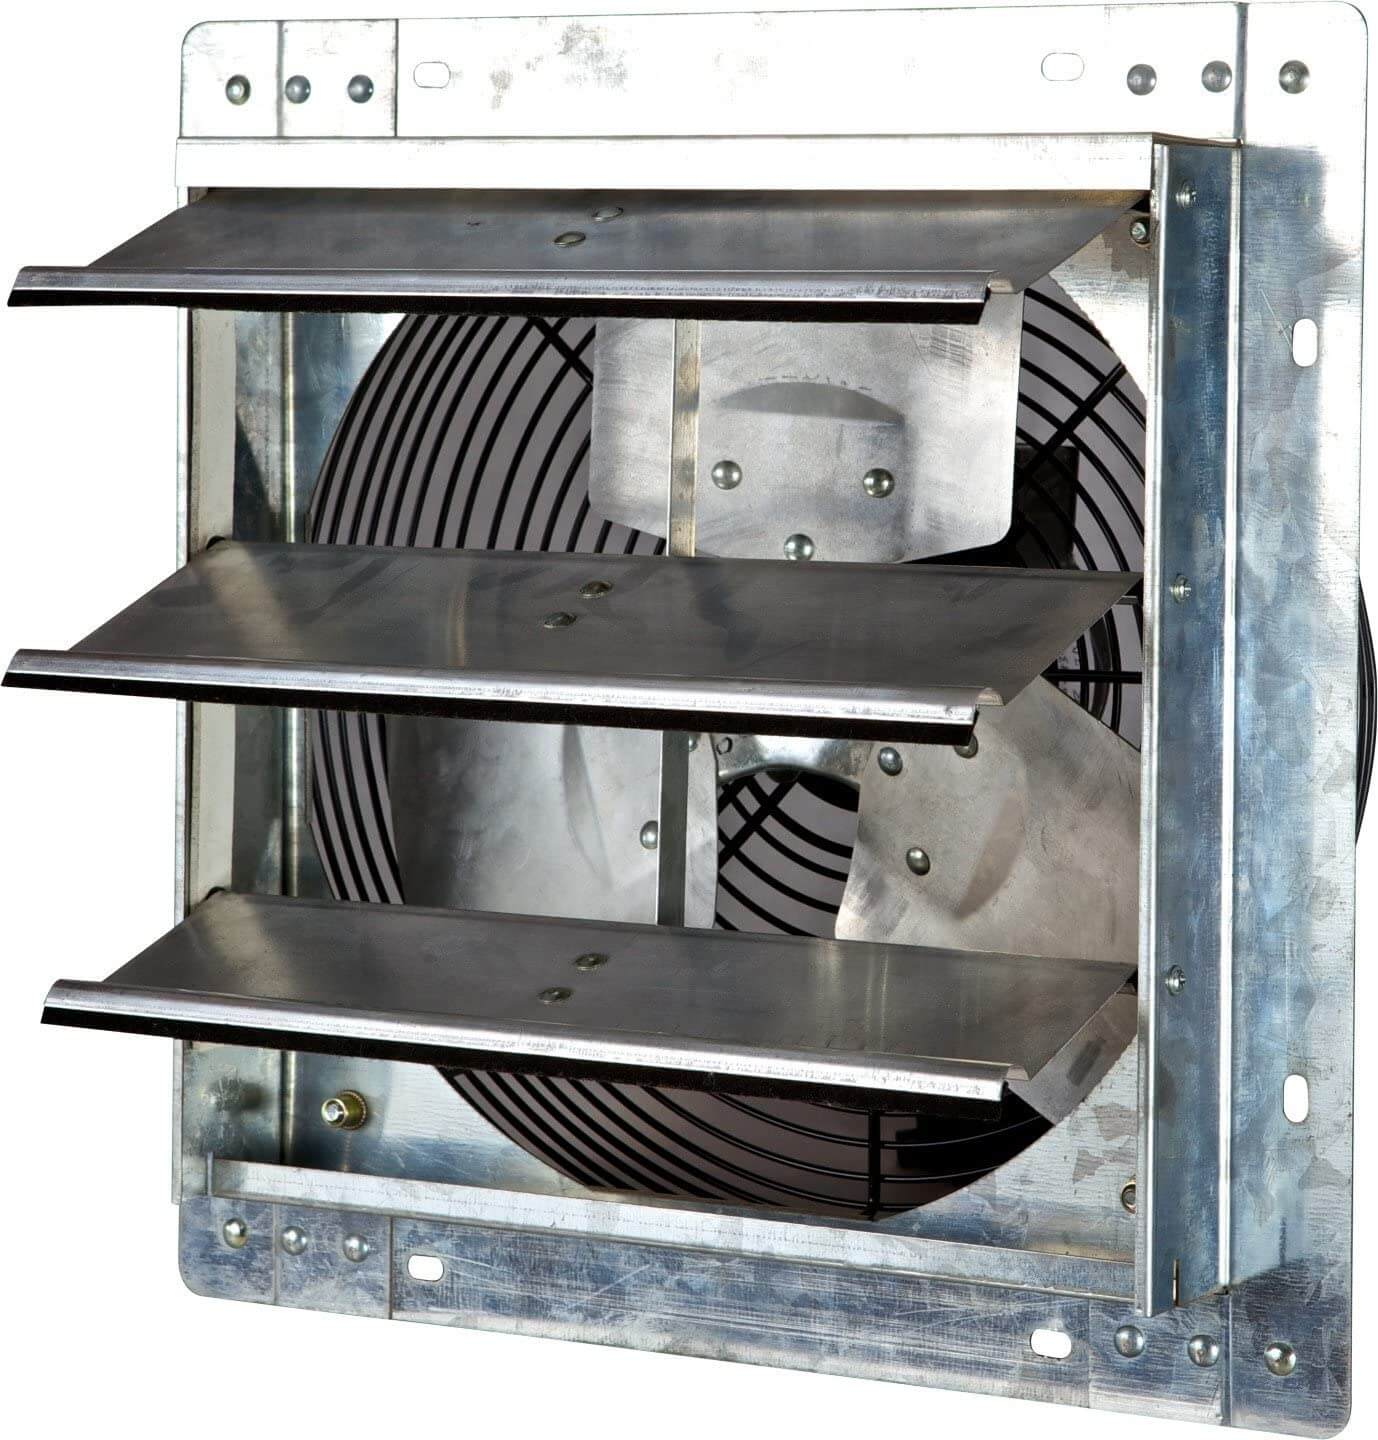 ILG8SF12V 12 inches Exhaust fan for garage by iLiving